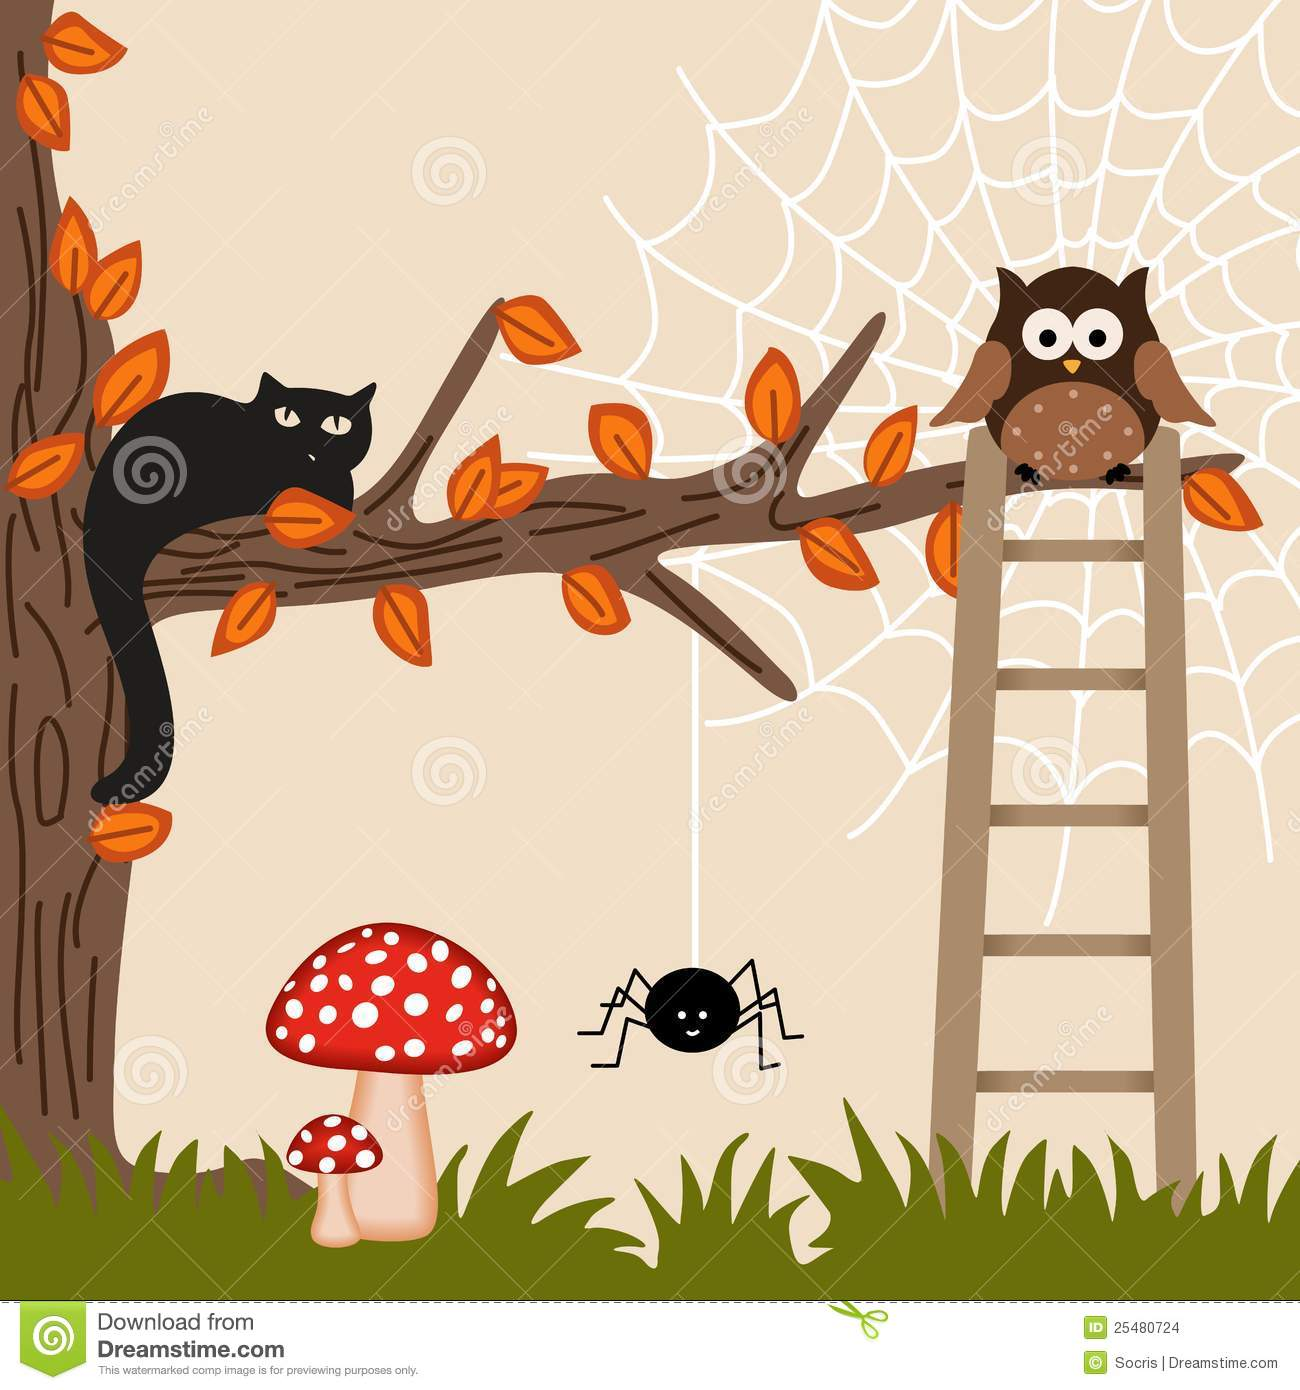 Cat and Owl on Tree